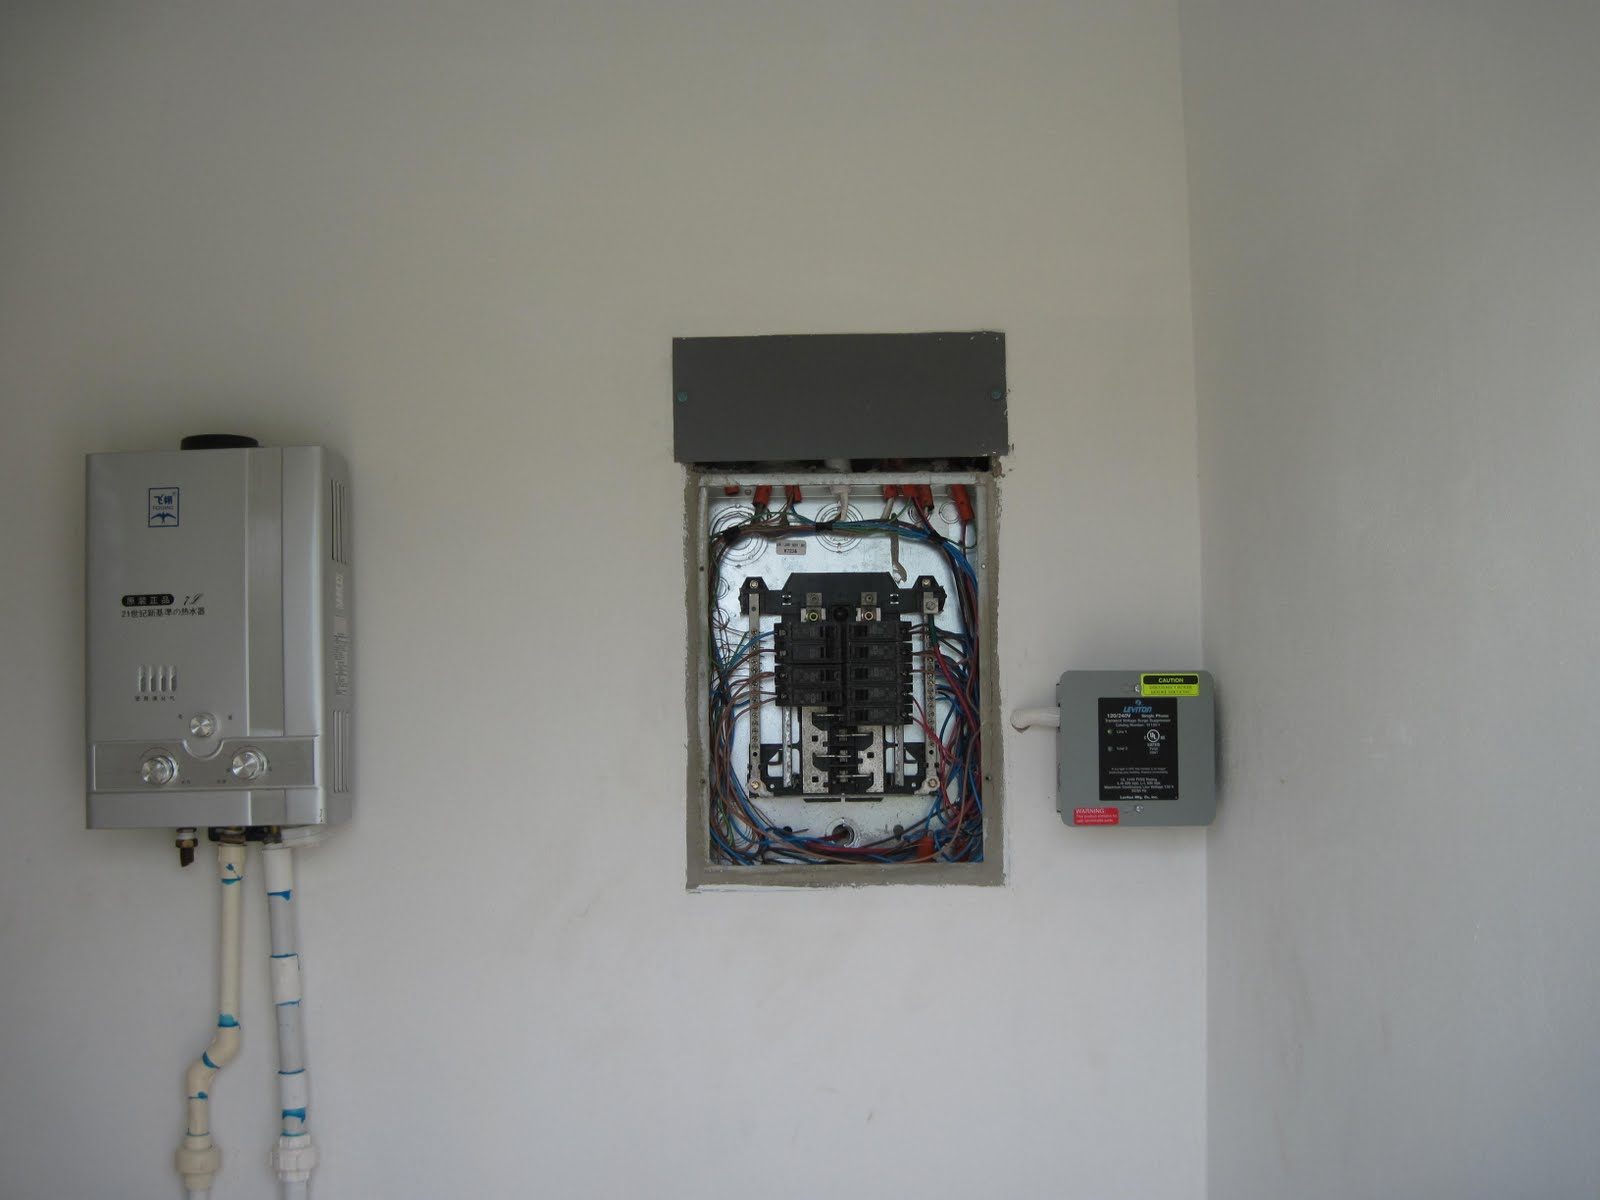 Whole House Water Heater Water Heater Breaker Box Whole House Surge Suppressor Home Design